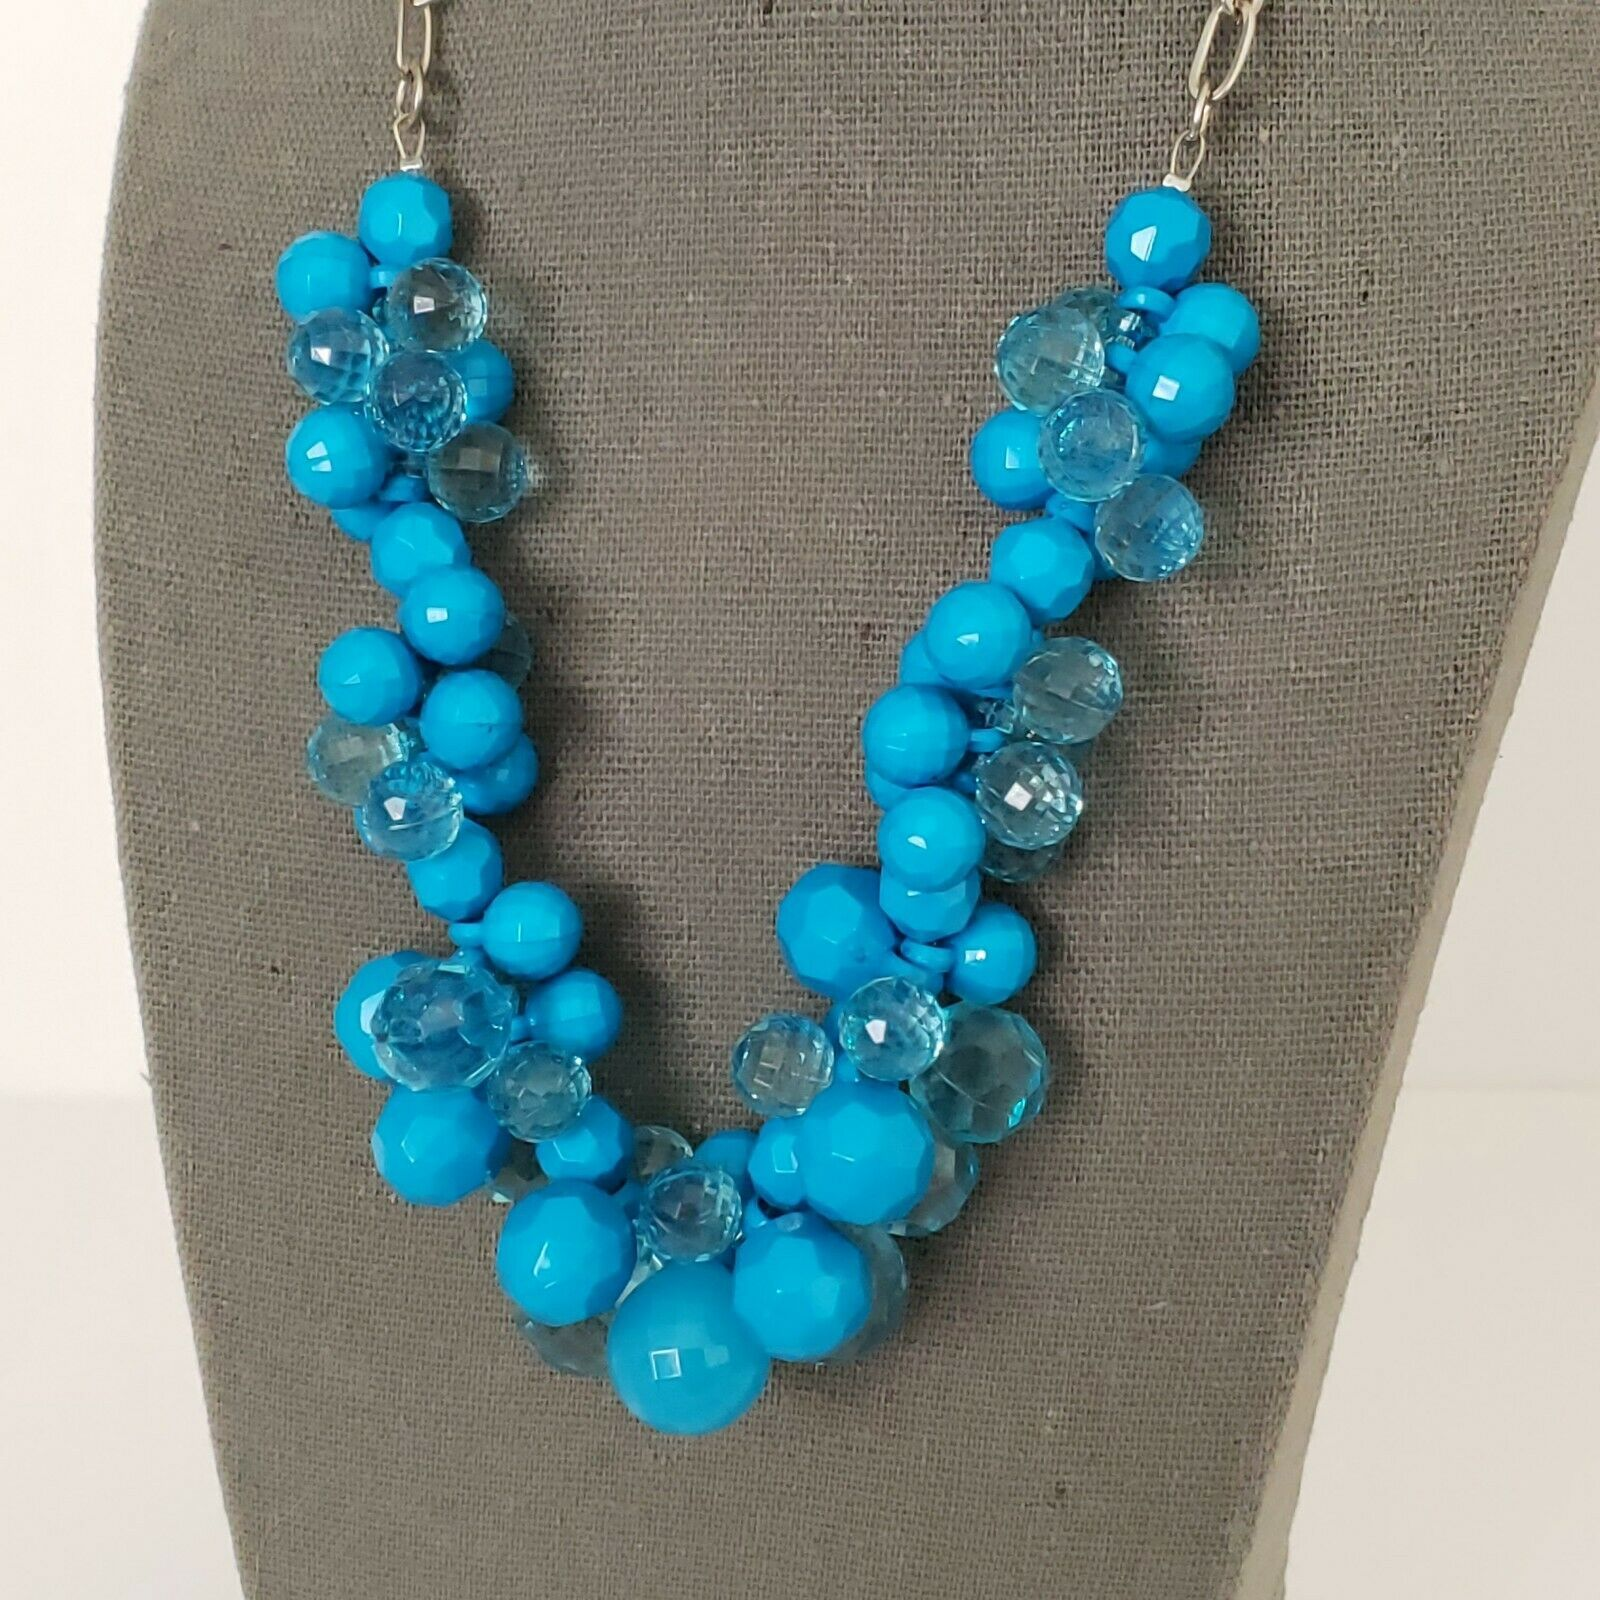 "Primary image for Blue Beaded Chunky Statement Necklace Silver Tone Hardware 18"" Adjustable"